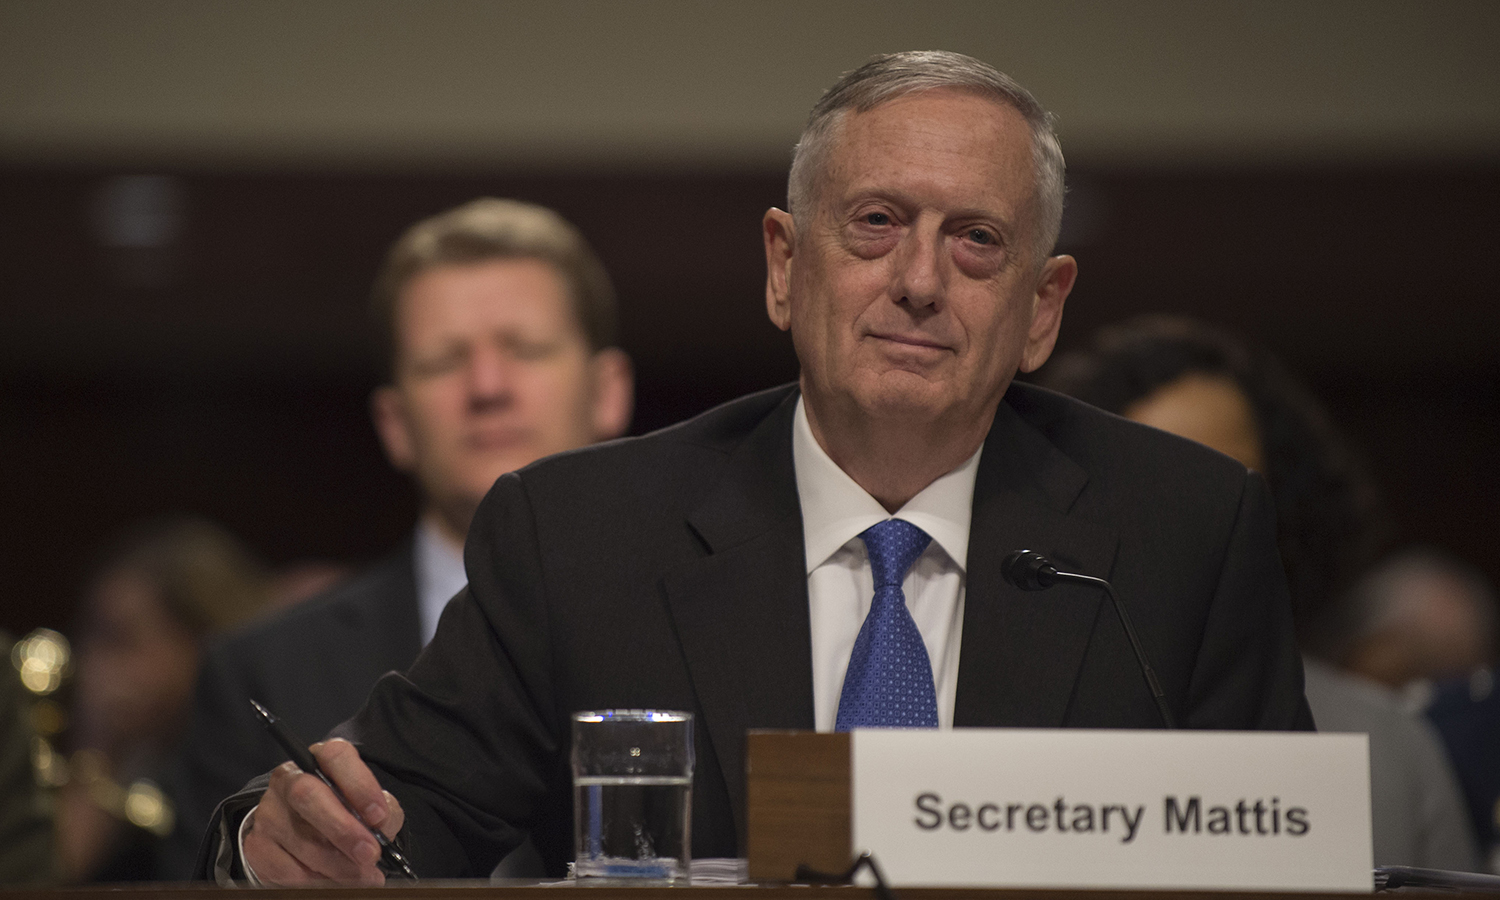 Defense Secretary Jim Mattis provides testimony on the Fiscal Year 2018 National Defense Authorization Budget Request from the Department of Defense to members of the Senate Committee on Armed Services in the Dirksen Senate Office Building in Washington D.C., June 13, 2017. (photo credit: DOD photo by U.S. Army Sgt. Amber I. Smith).